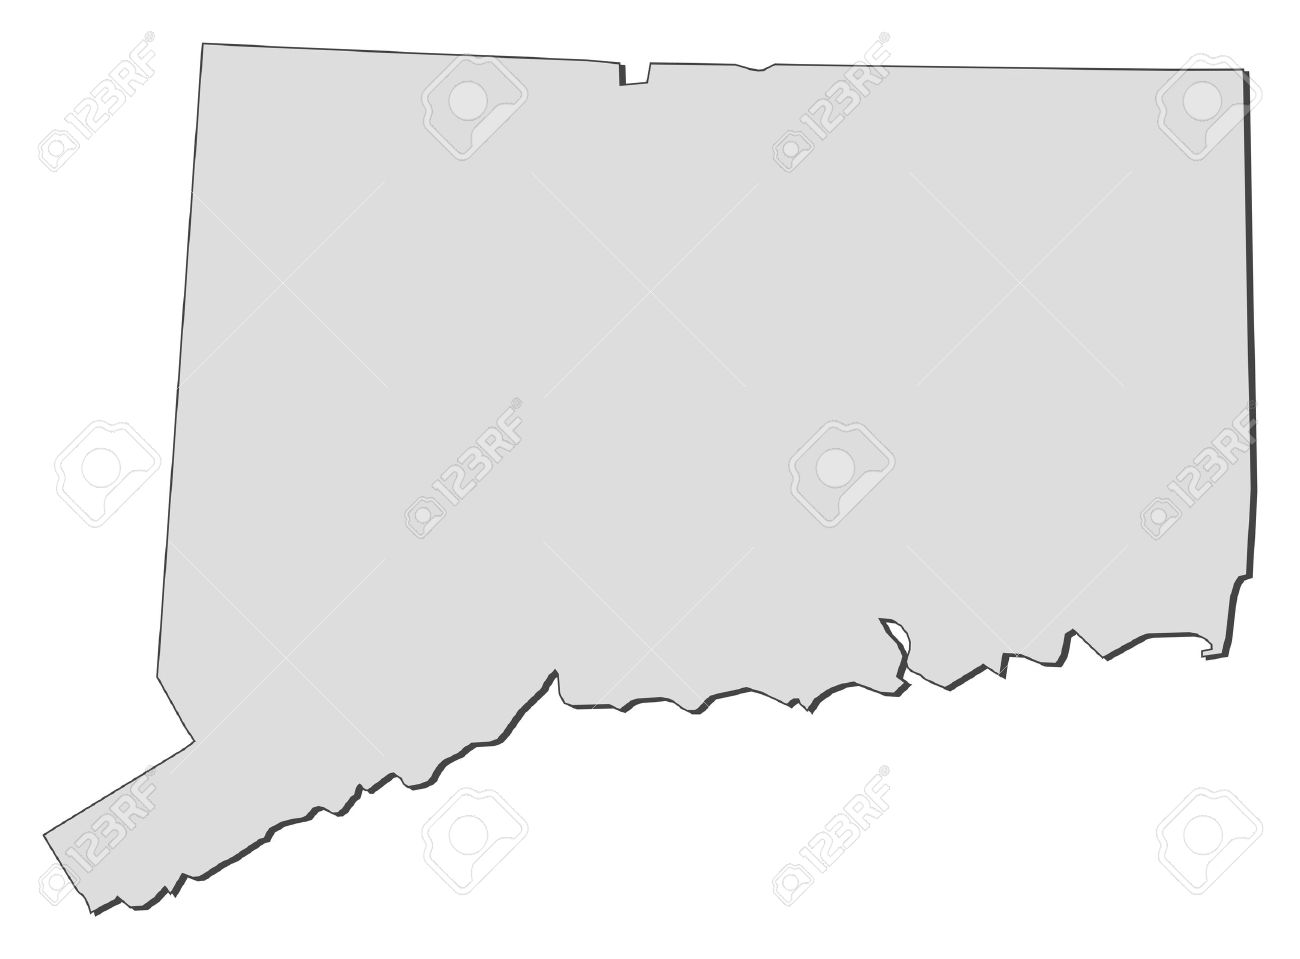 Map Of Connecticut A State Of United States Royalty Free - Connecticut state map